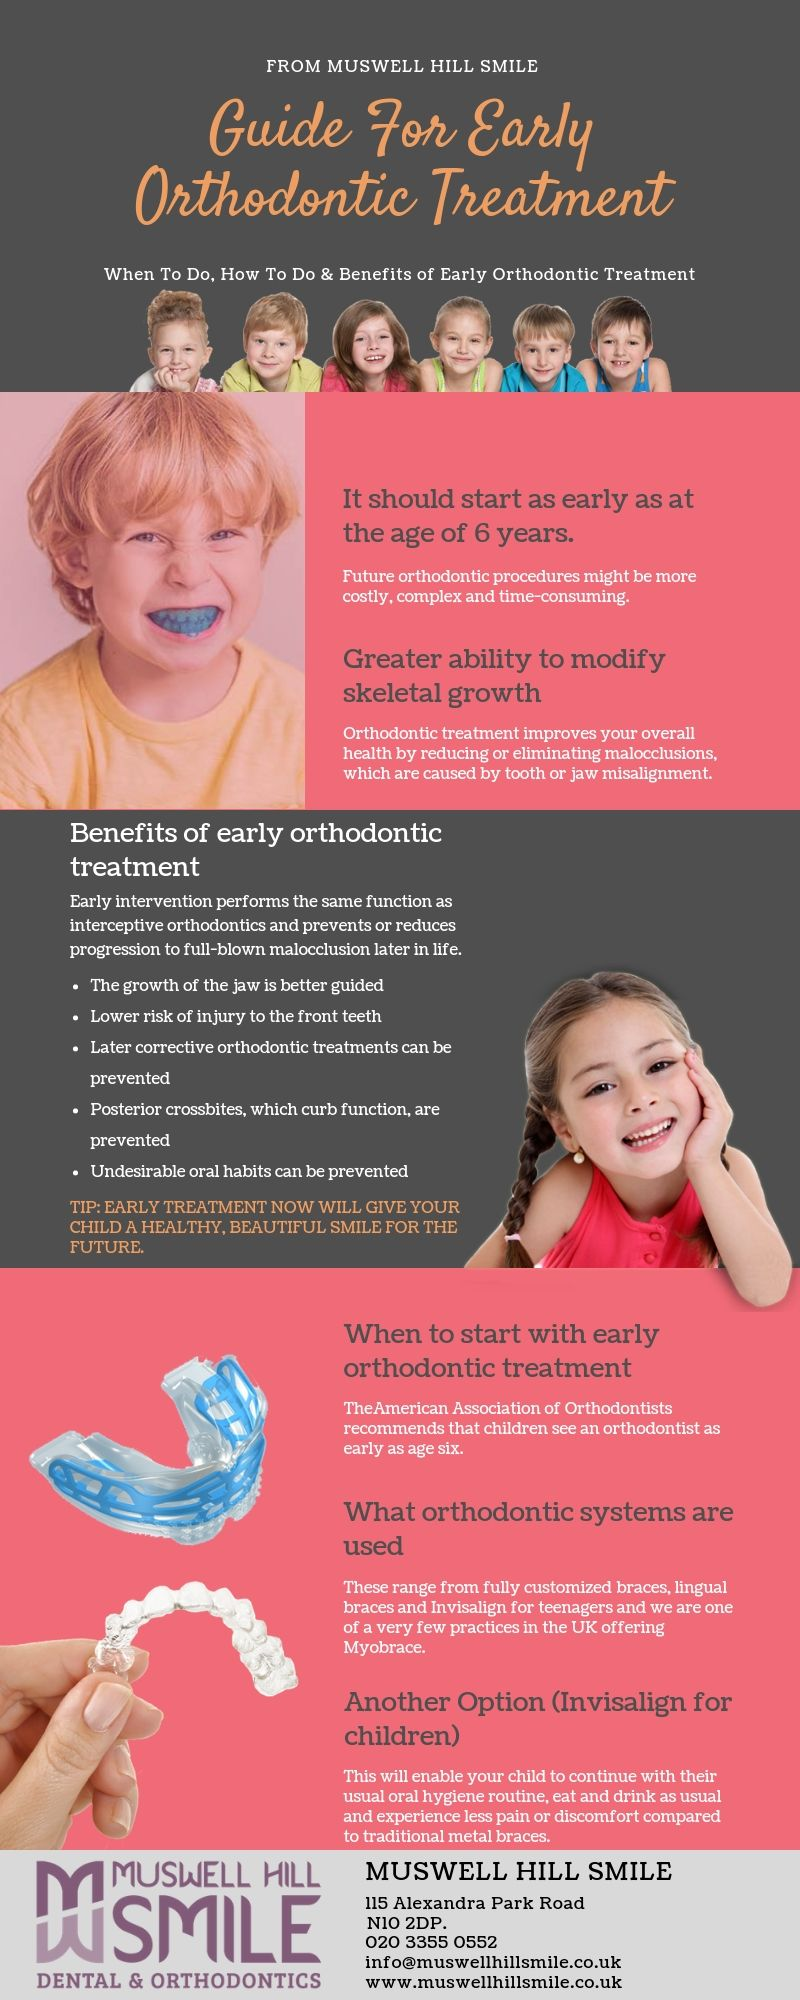 Guide For Early Orthodontic Treatment